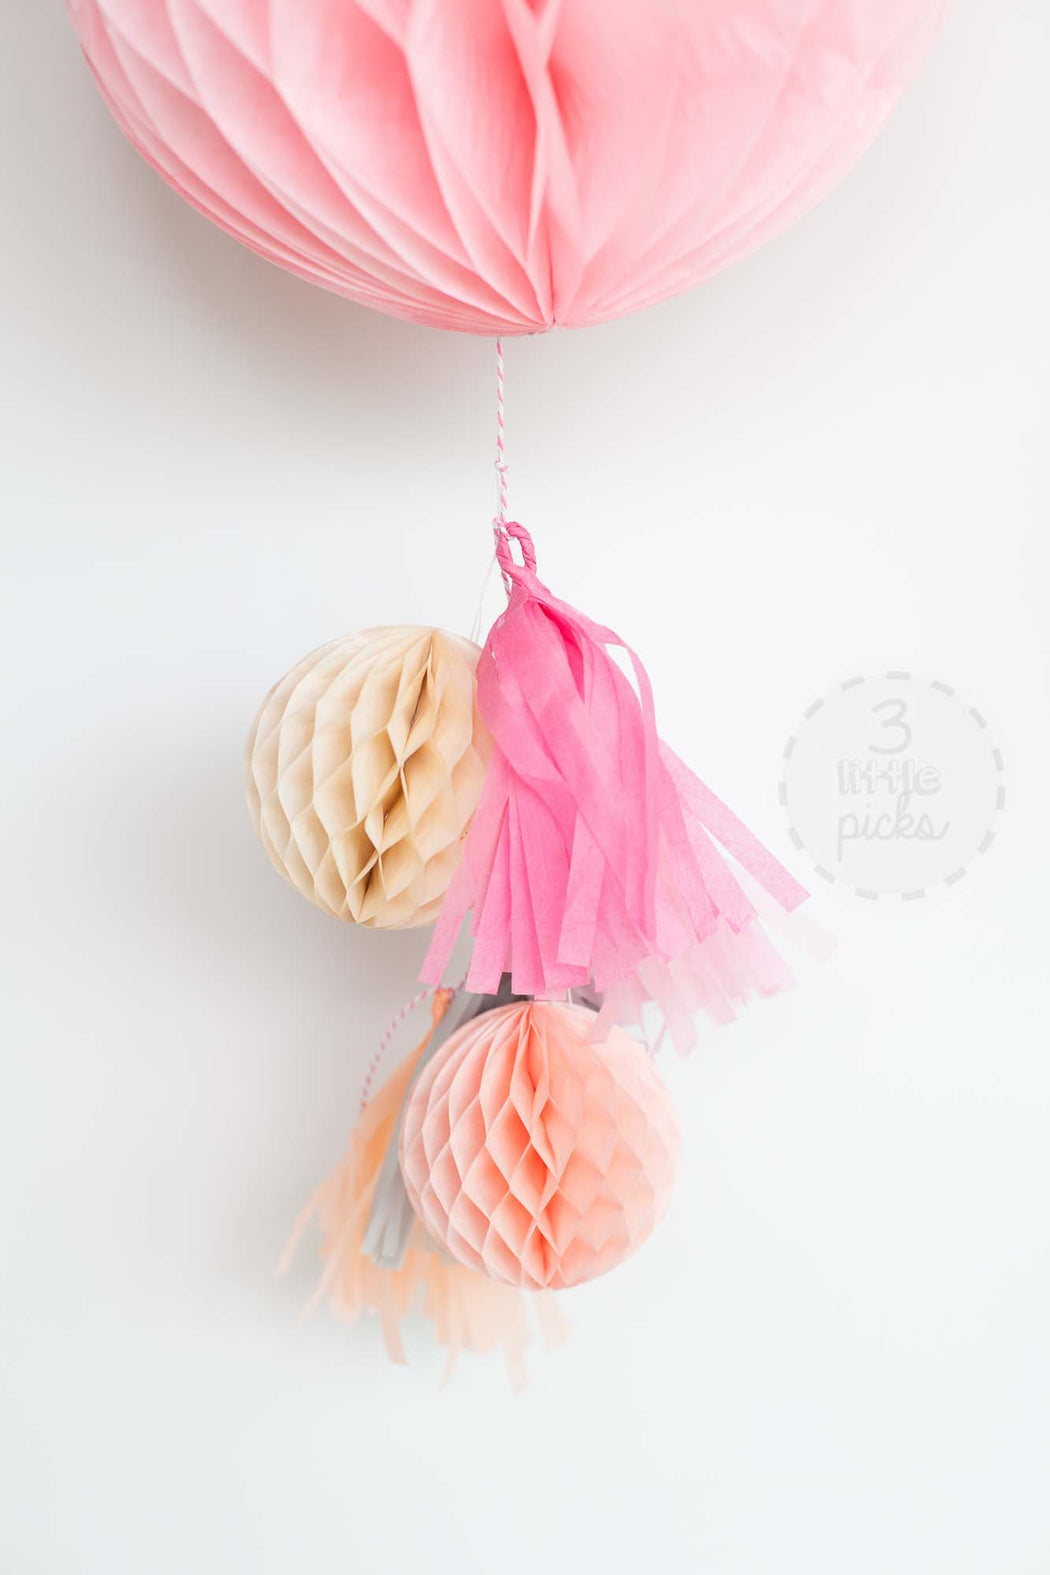 Honeycomb Tassel Kit, Partyware, 3littlepicks - 3LittlePicks